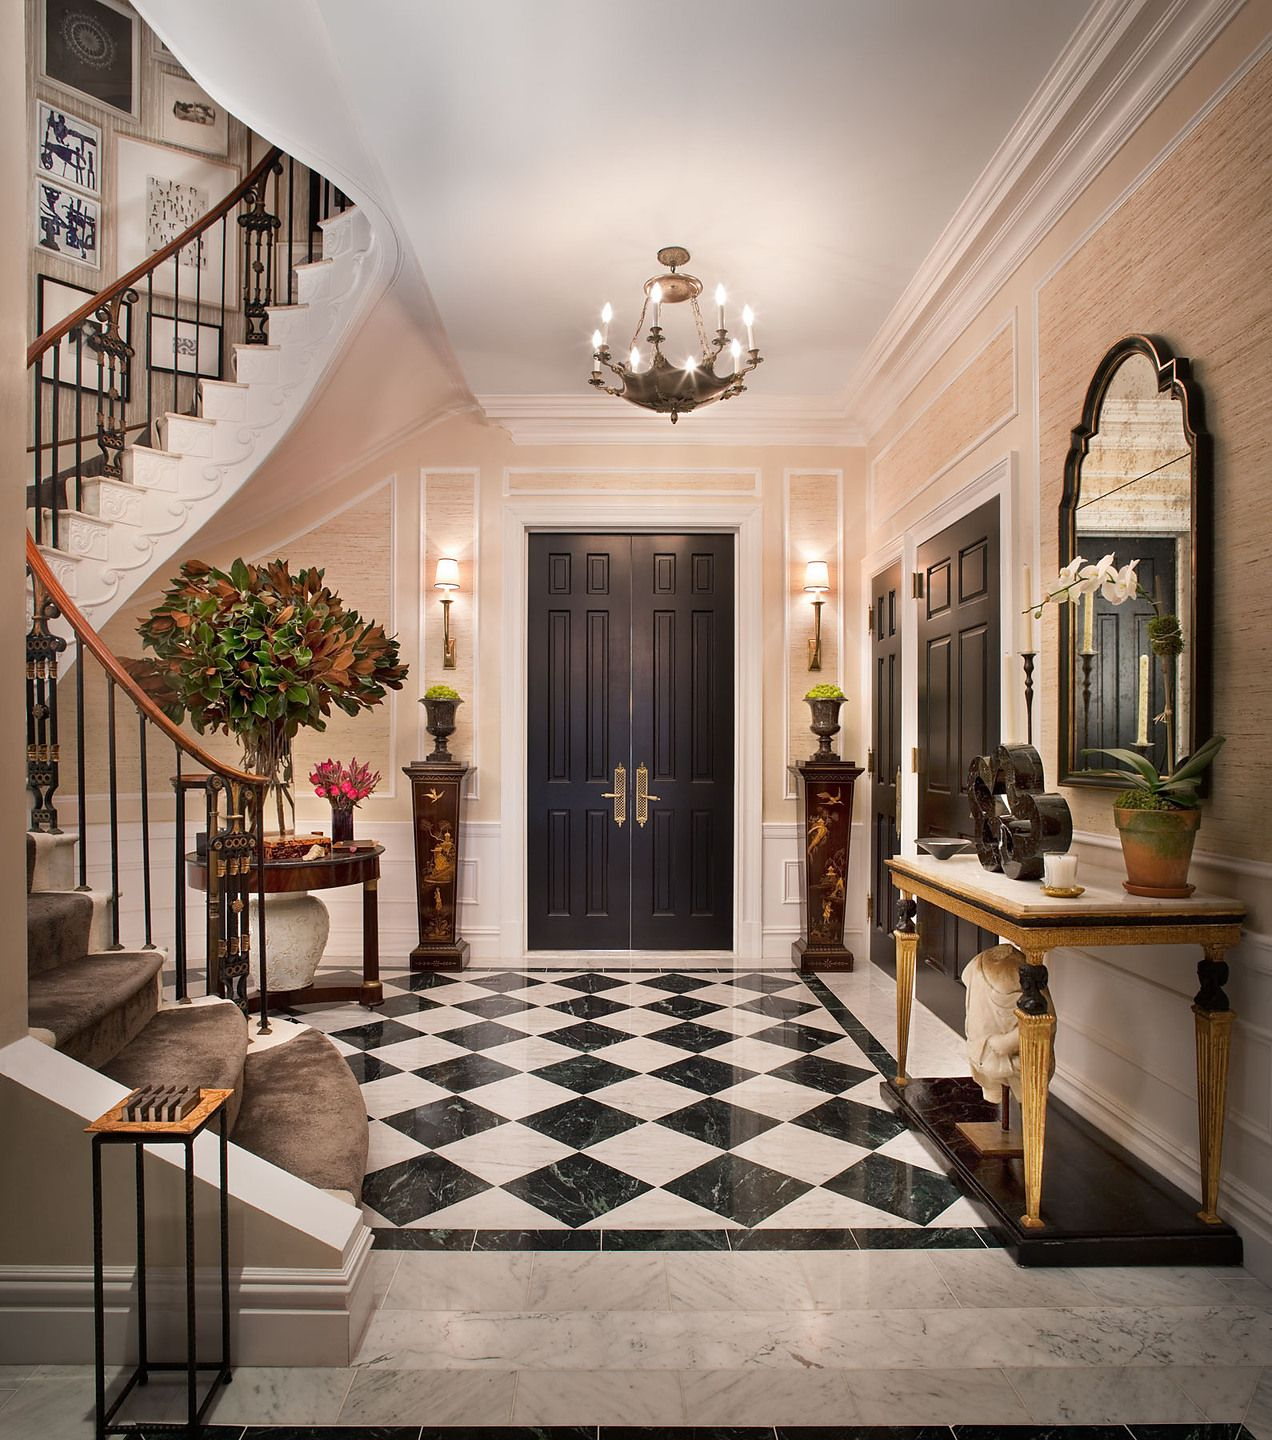 Kips Bay Decorator Showhouse Featuring Neutral Tones With A Pop Of Texture For This Traditional Fro Interior Design Your Home Foyer Design Home Interior Design